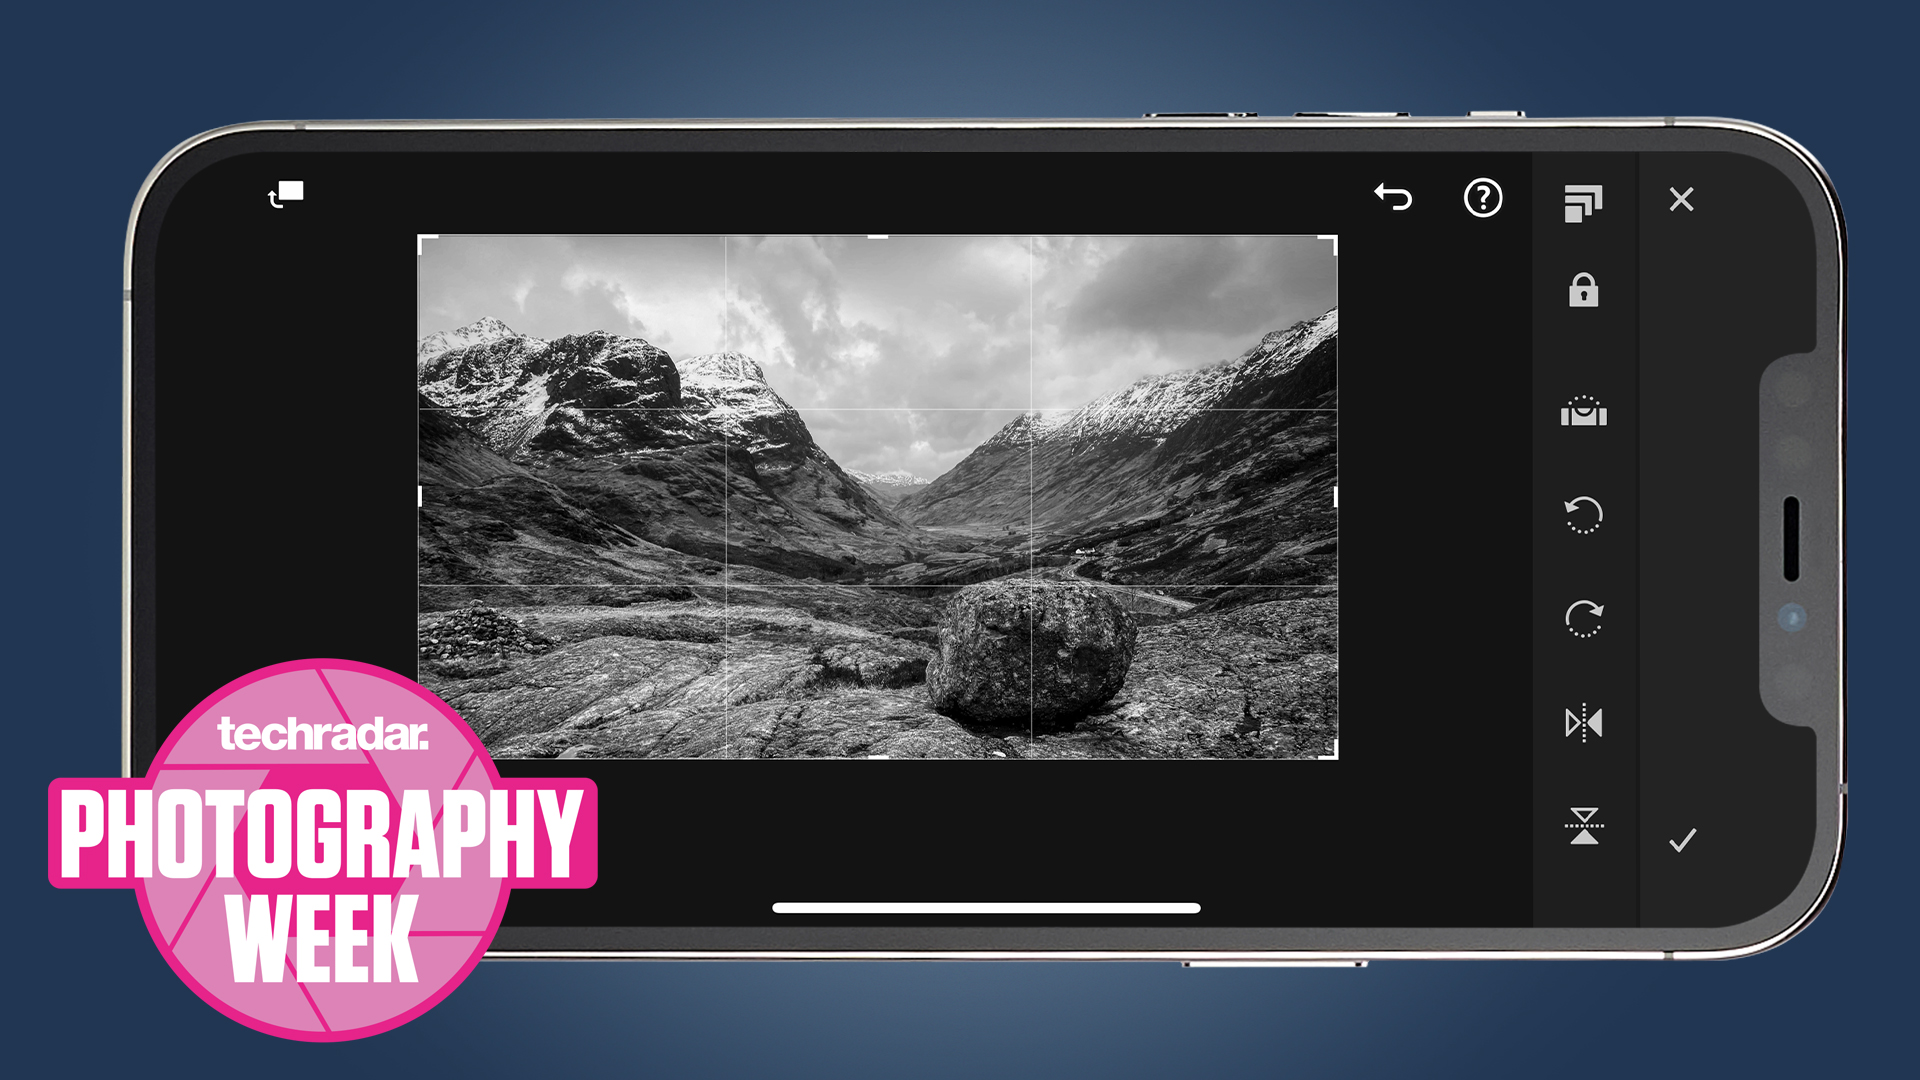 An iPhone shooting a landscape photo in black and white